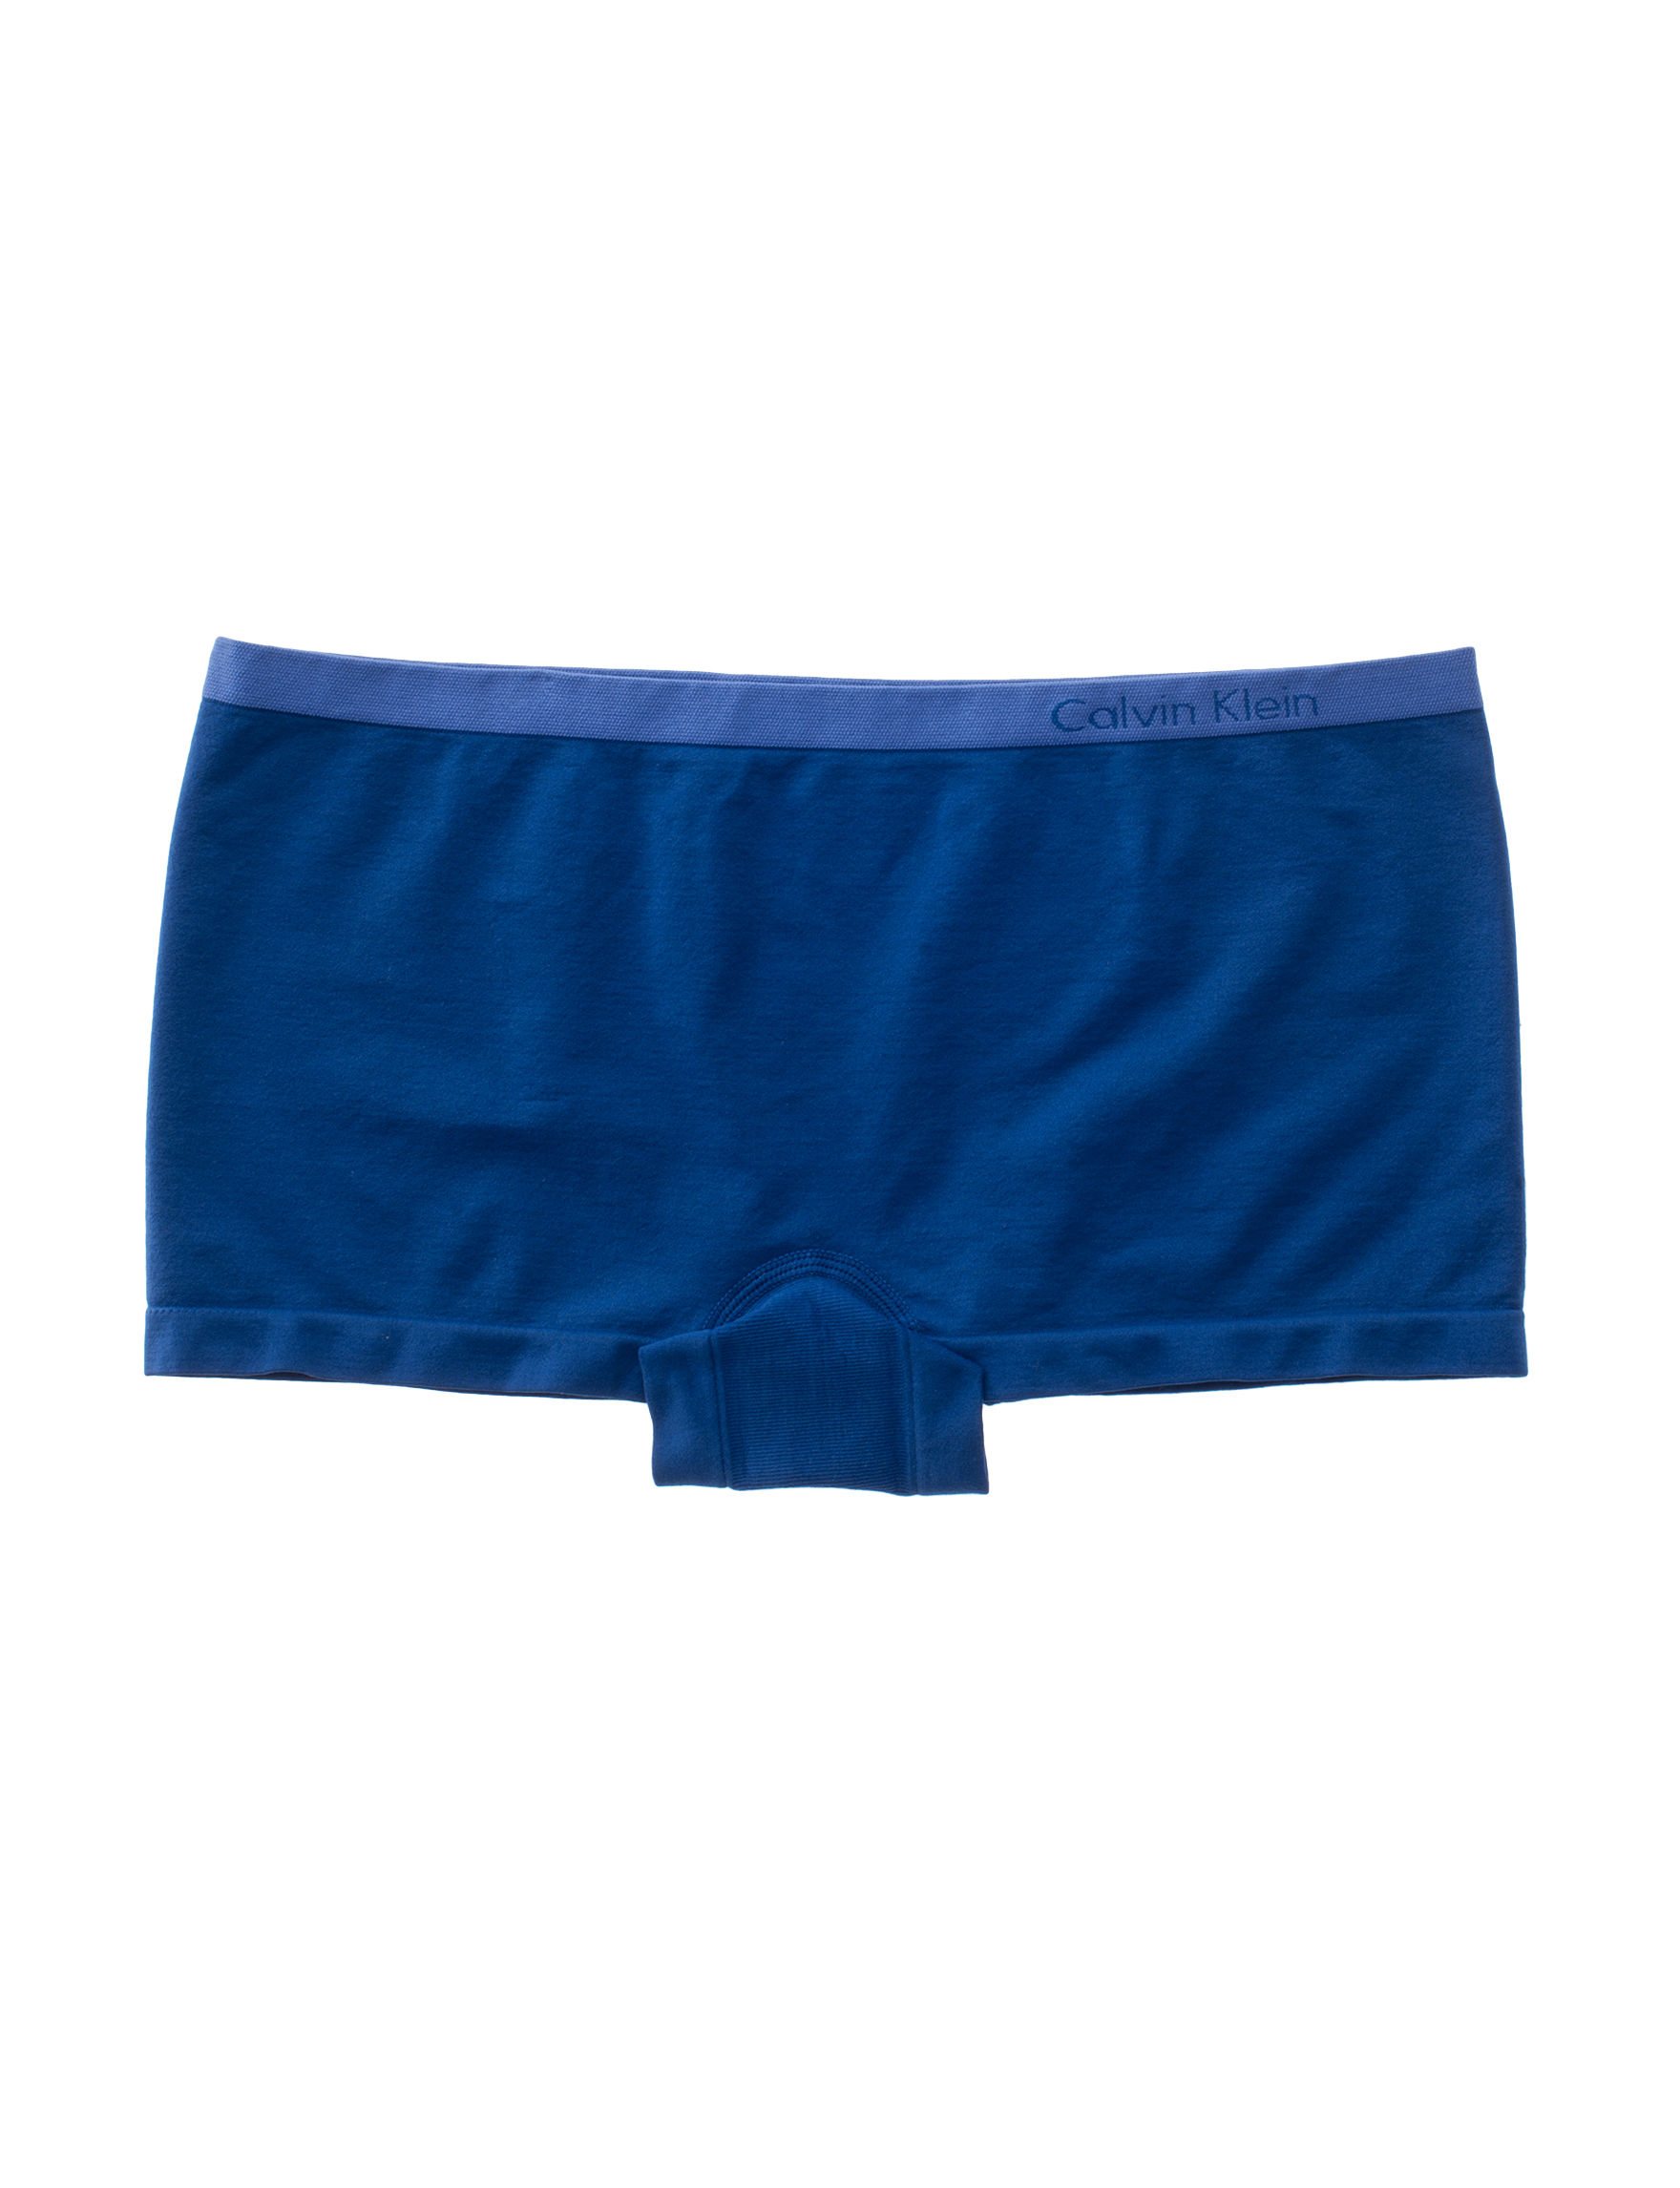 Calvin Klein Blue Panties Boyshort Seamless